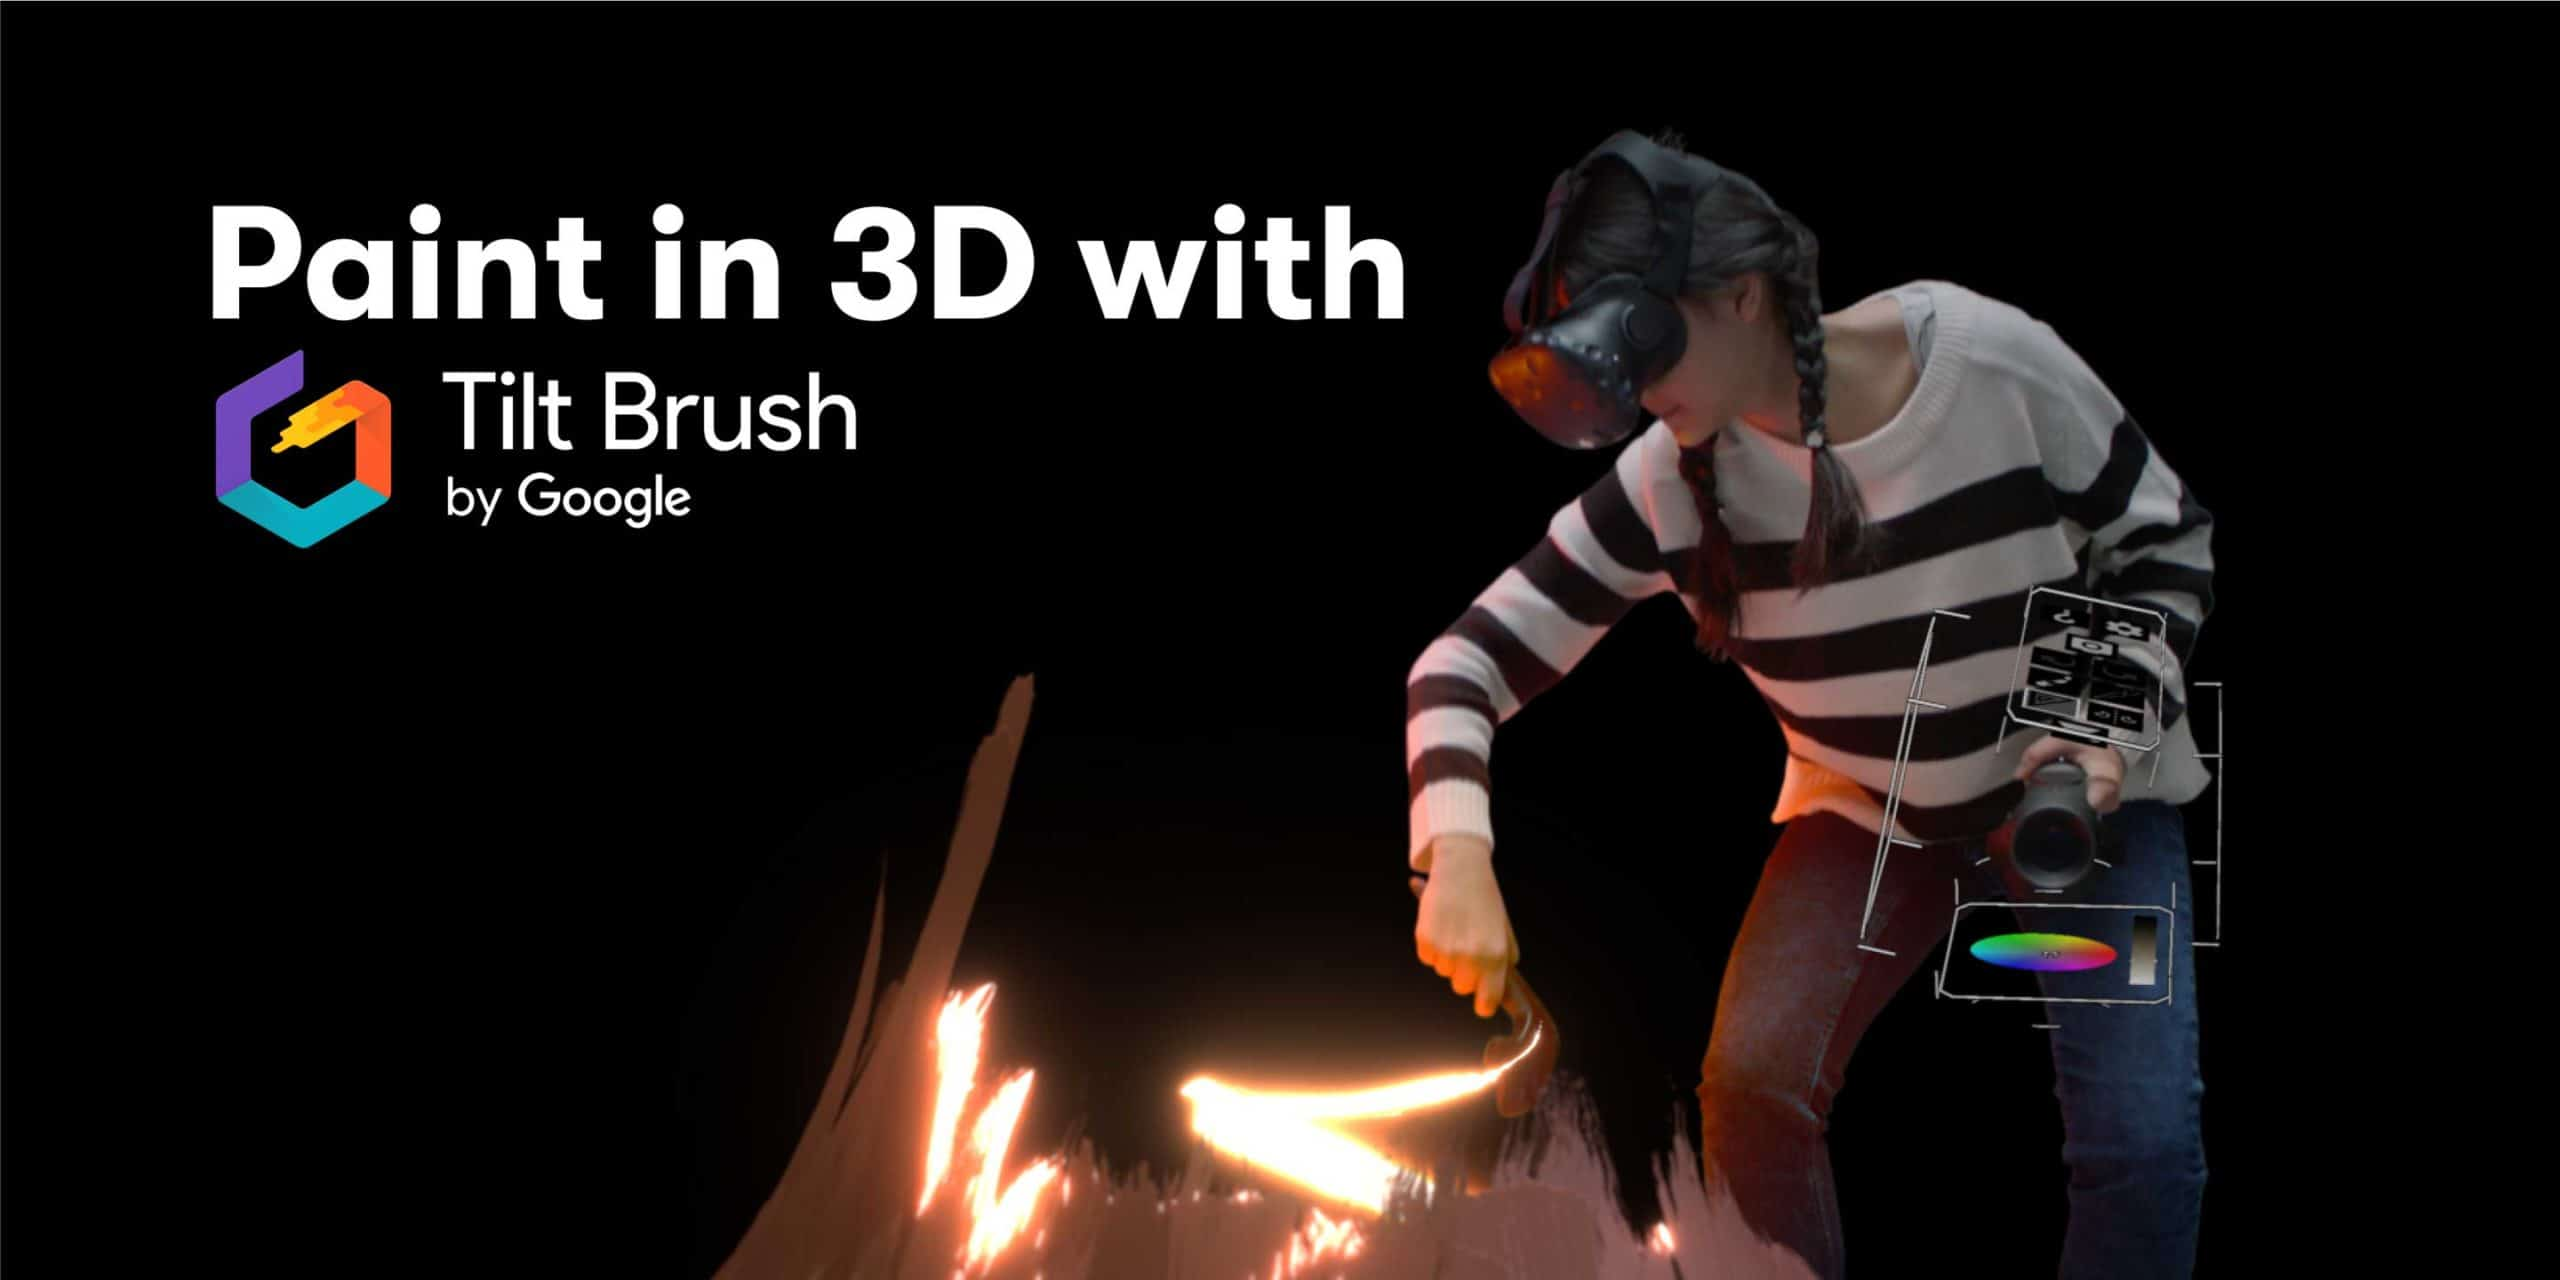 Paint in 3D with Tilt Brush by Google | Saturday Kids